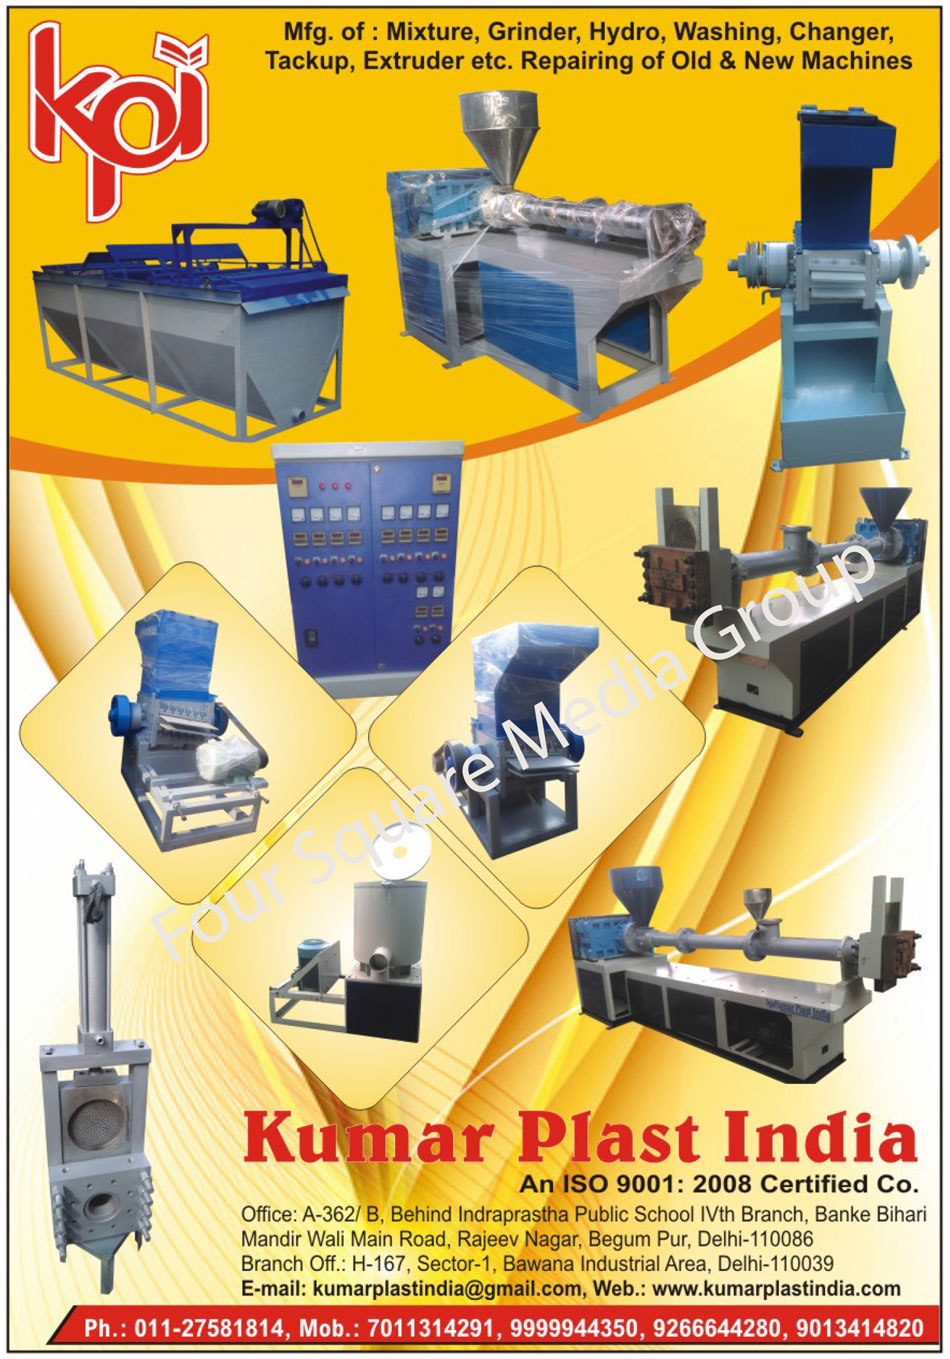 Plastic Industry Washing Machines, Take Up Machines, SS Cooling Mixture Machines, Plastic Industry Cylinders, Plastic Industry Hydraulic Tank, Plastic Extruders, Plastic Industry Flame Dryers, Extruders, Grinders, Hydro Washing, Mixture, Industrial Conveyor, Extruder Machine, Hydraulic Changer, Pipe Plant, Vacuum Tank, Hydraulic Tank, Washing Plant, Mixture Machine, Extruder Machine, Industrial Cylinders, Digital Panels, Aglo Machine, Hydraulic Power Pack, Industrial Flame Dry, Hydro Machines